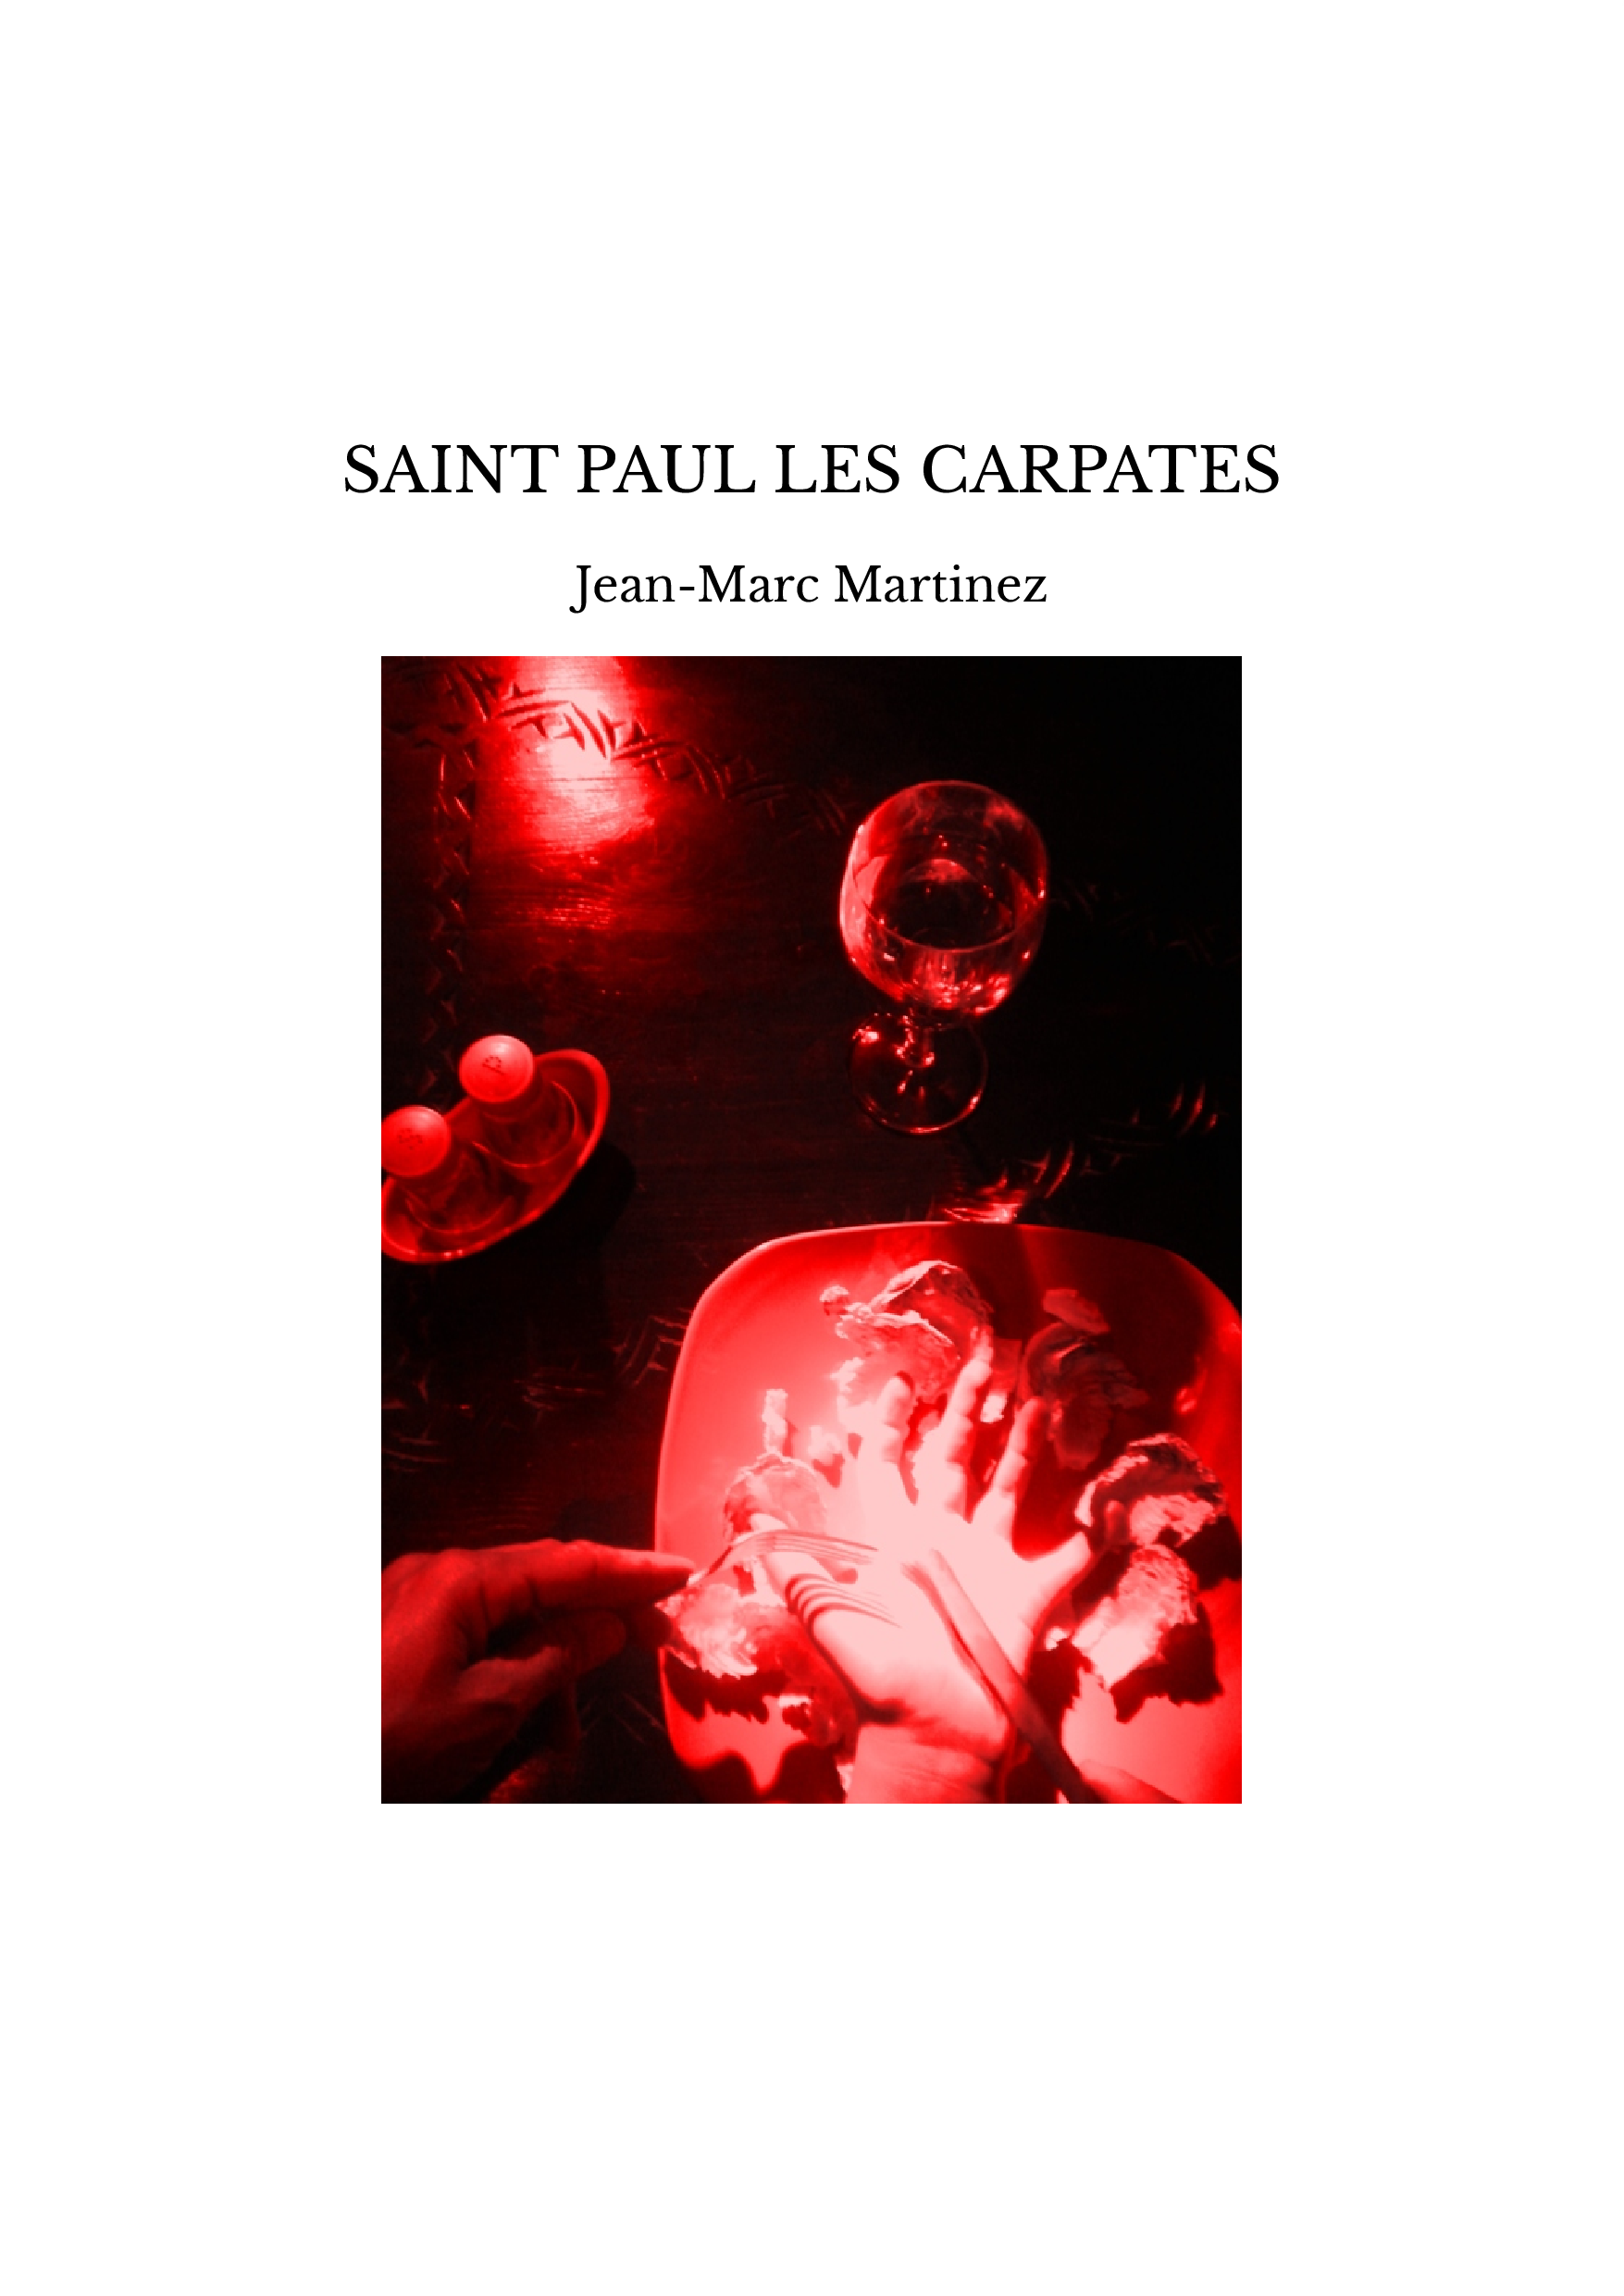 SAINT PAUL LES CARPATES